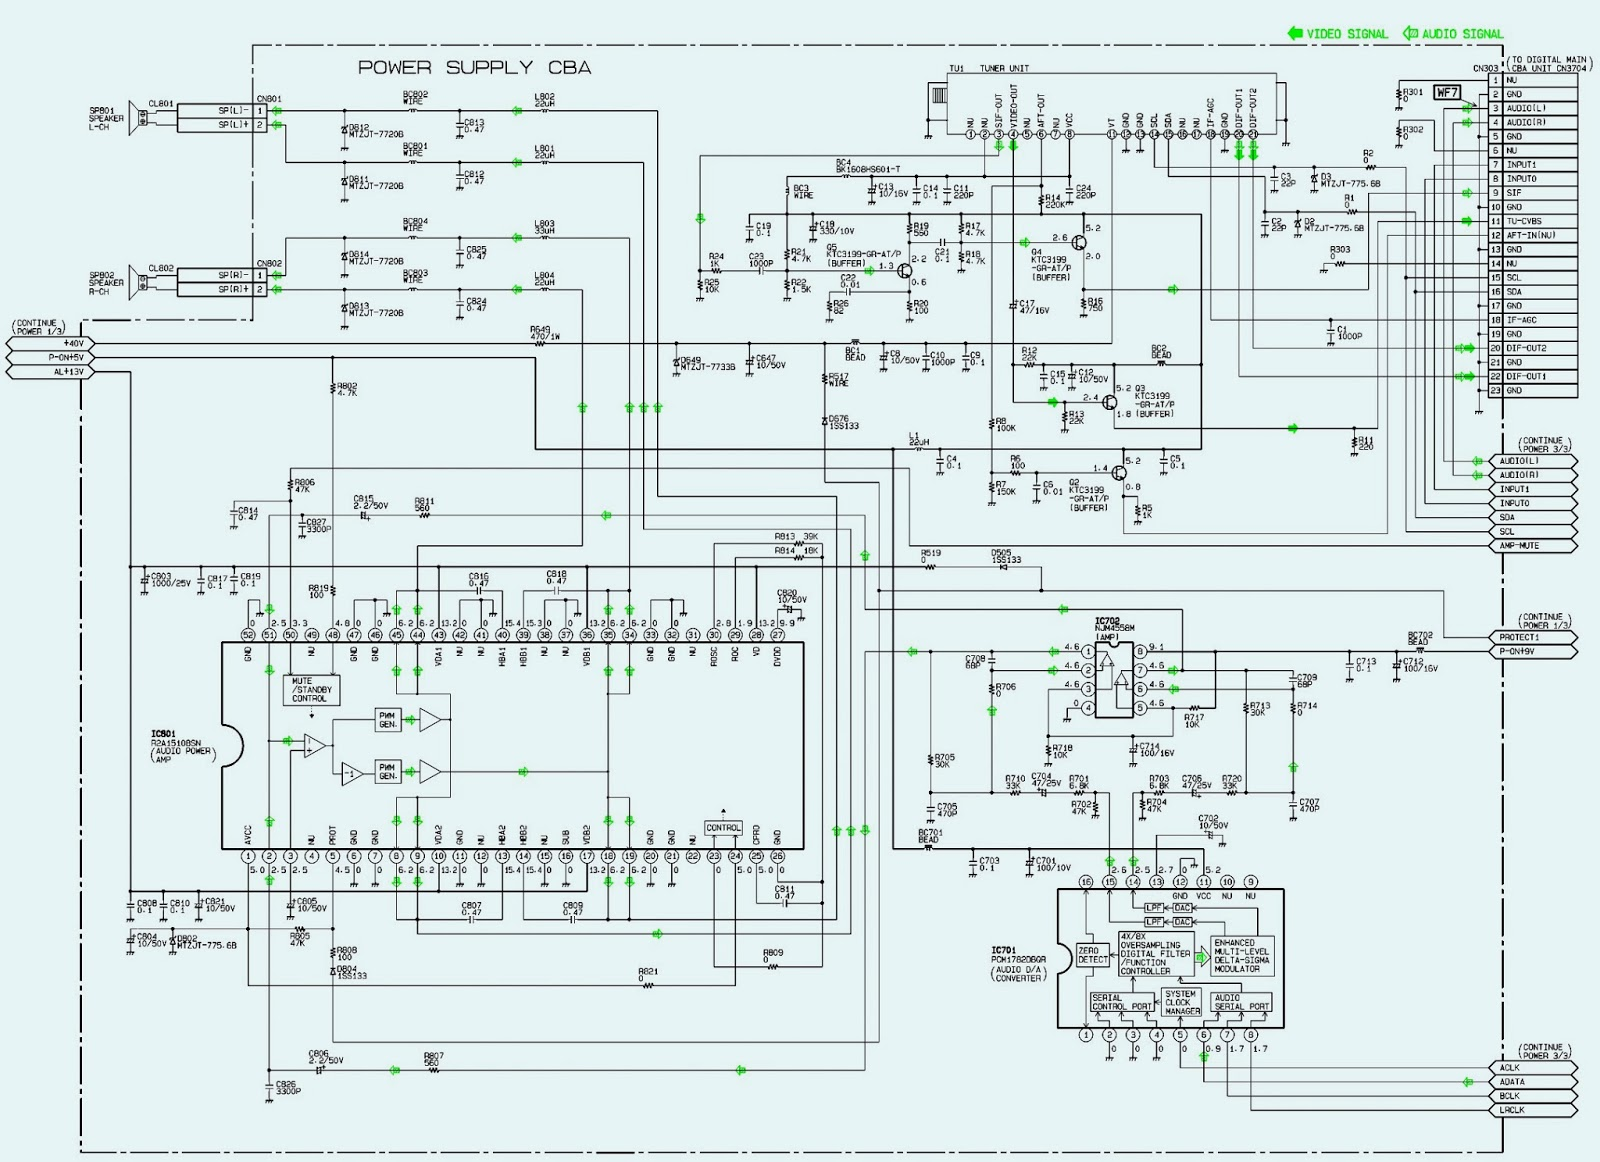 Emerson Ups Circuit Diagram Free Wiring For You Power Supply And Lc320em9 Back Light Inverter Drawing Electrical Schematic Diagrams